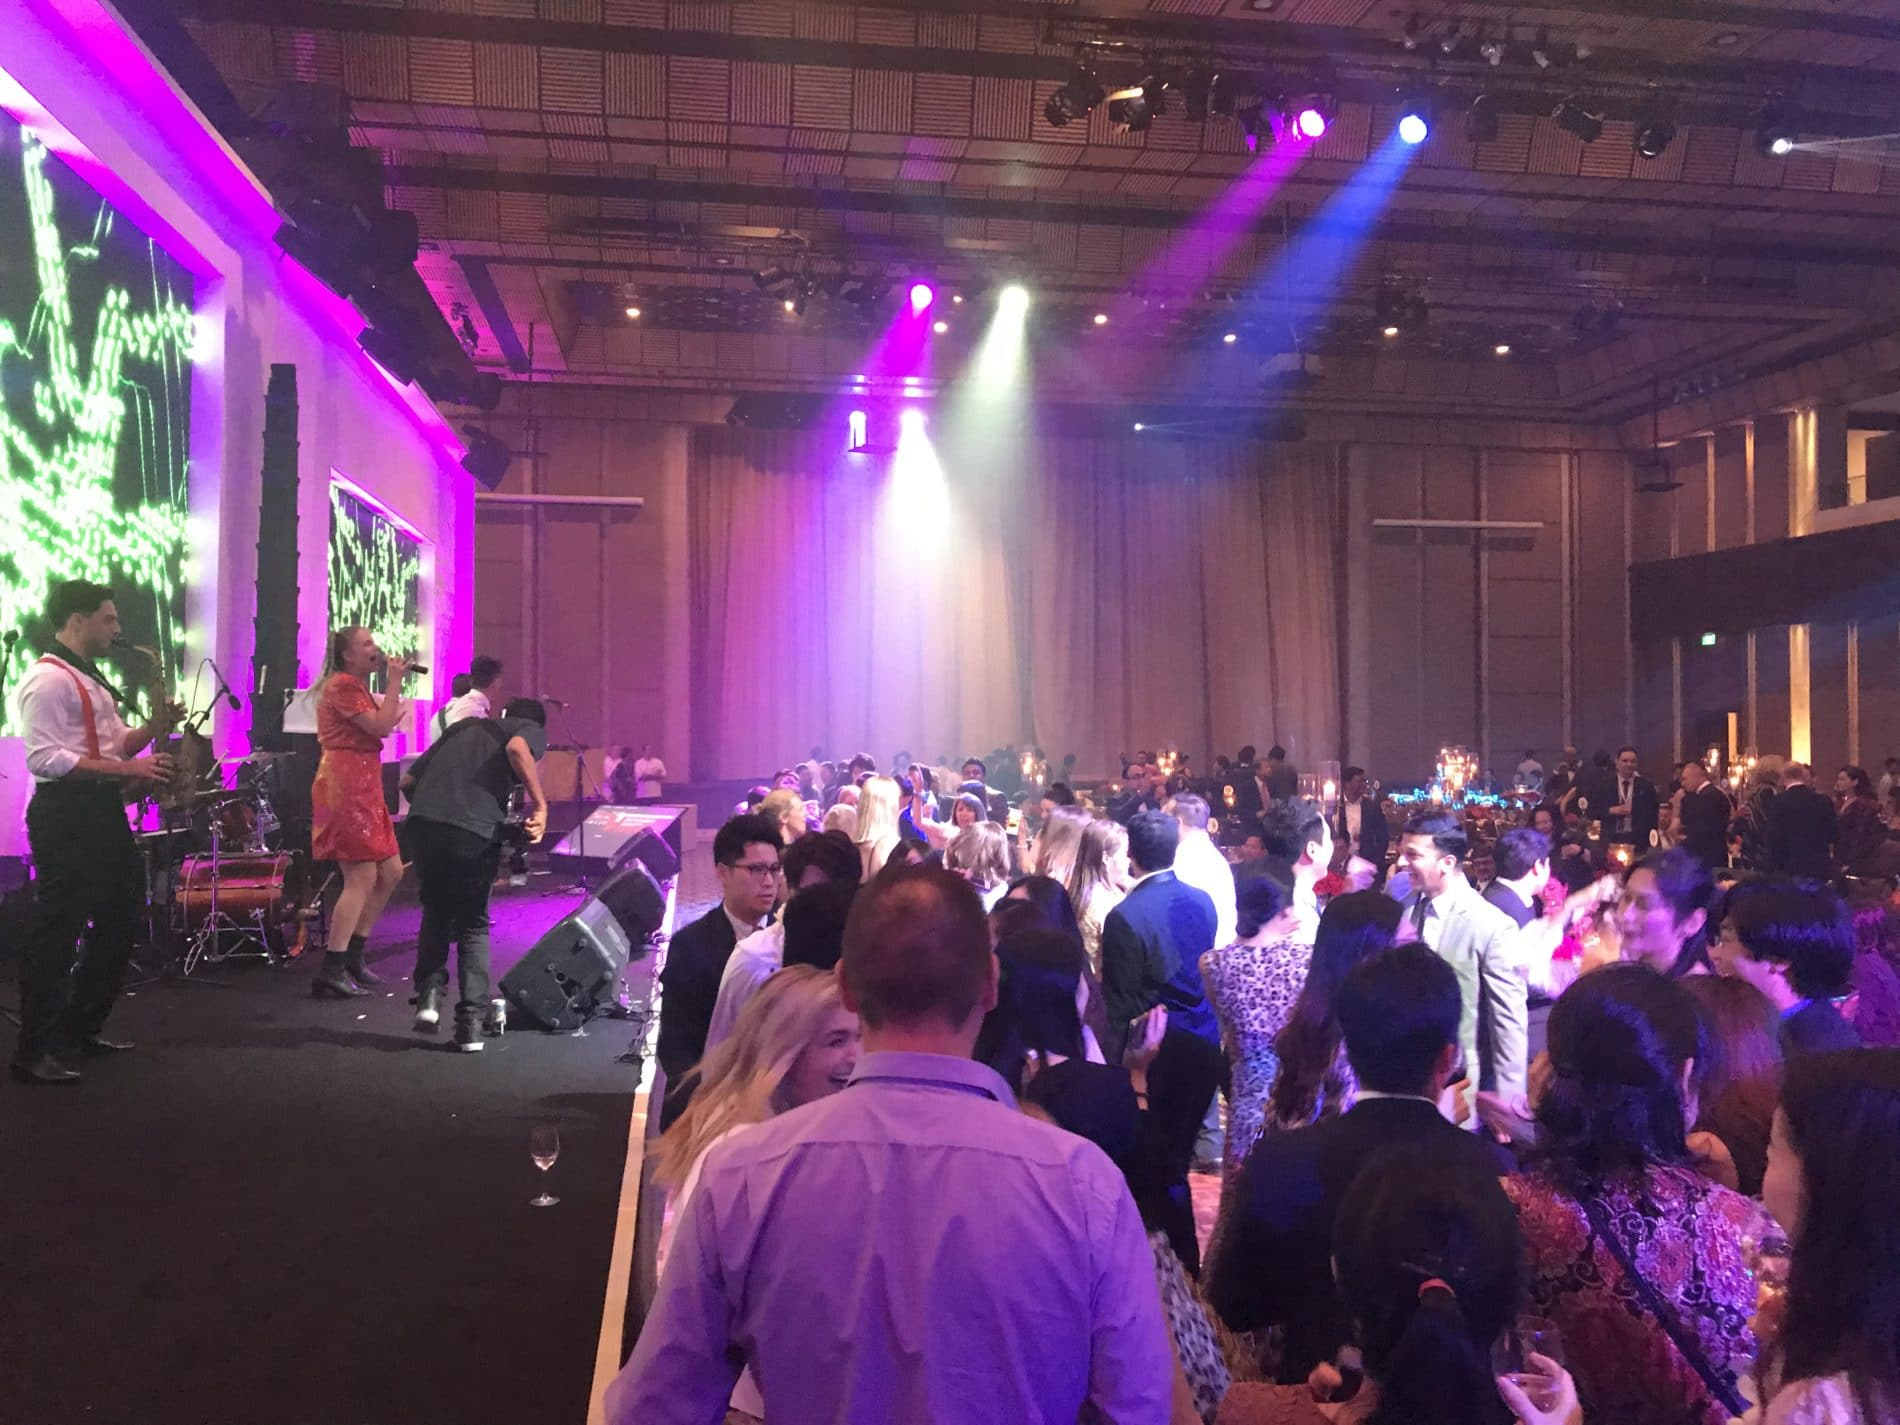 Bali band performance for Edwards Lifesciences